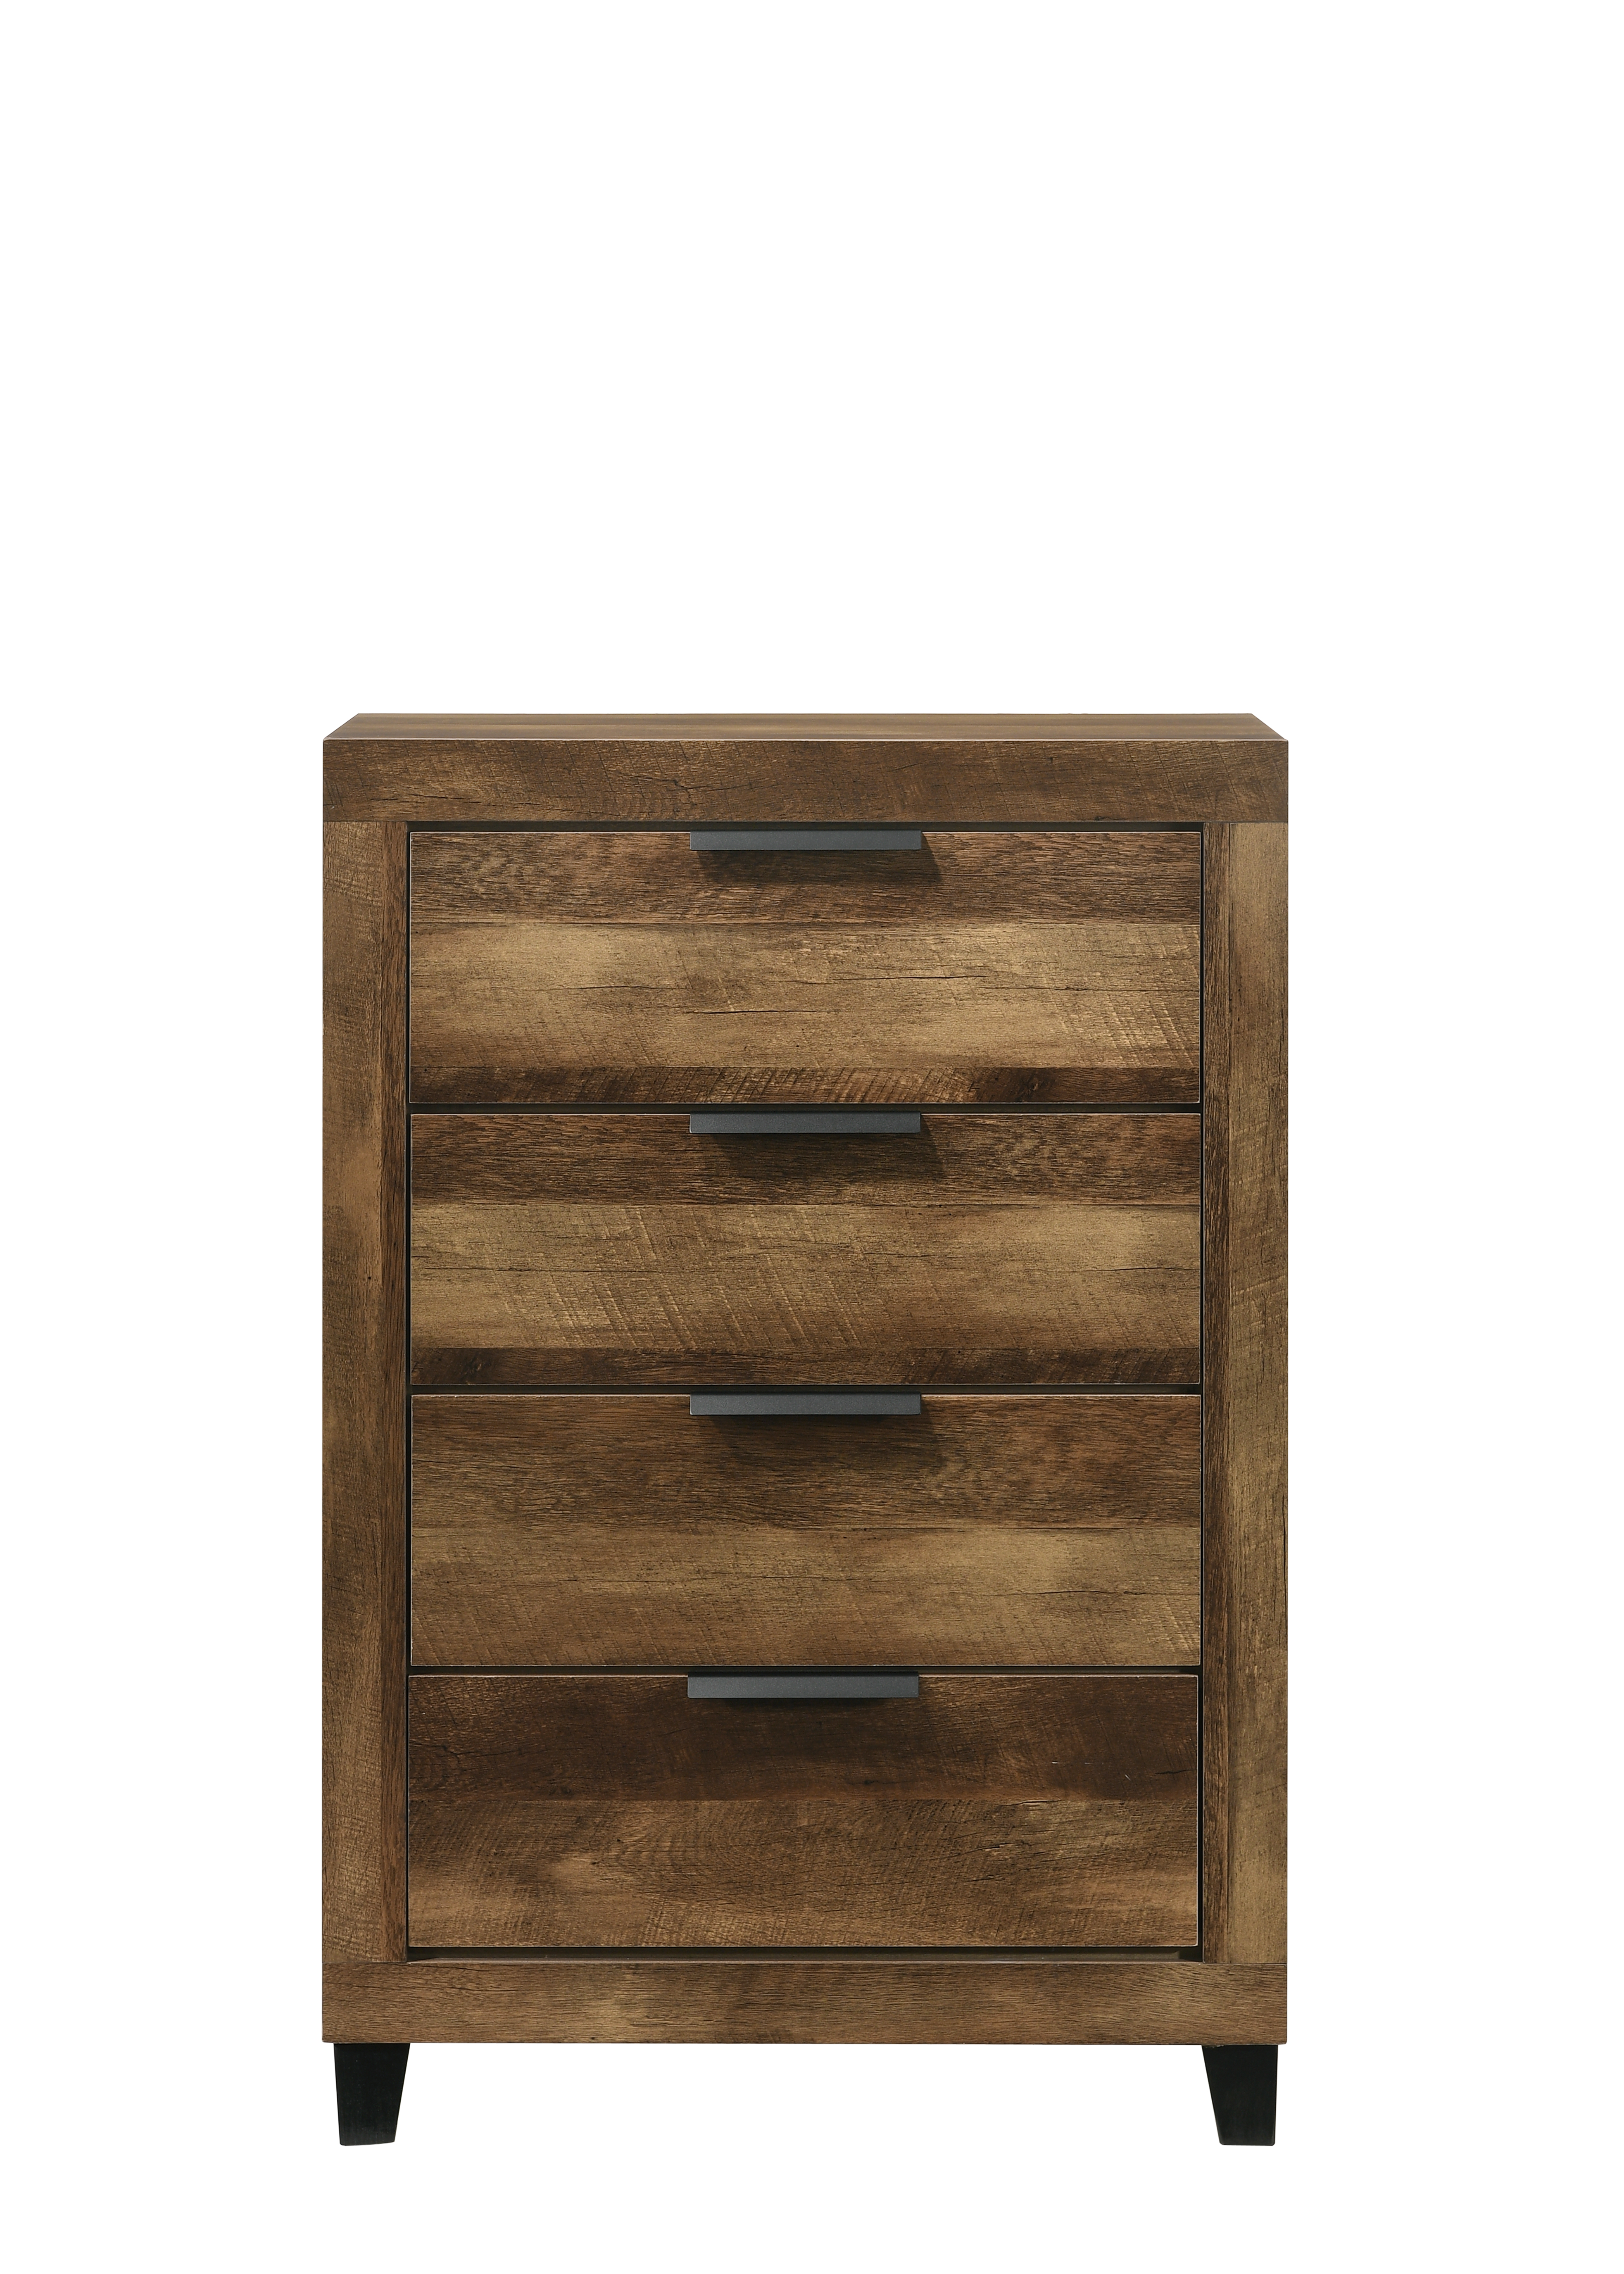 Morales Chest of Drawers by Acme Furniture at Dream Home Interiors